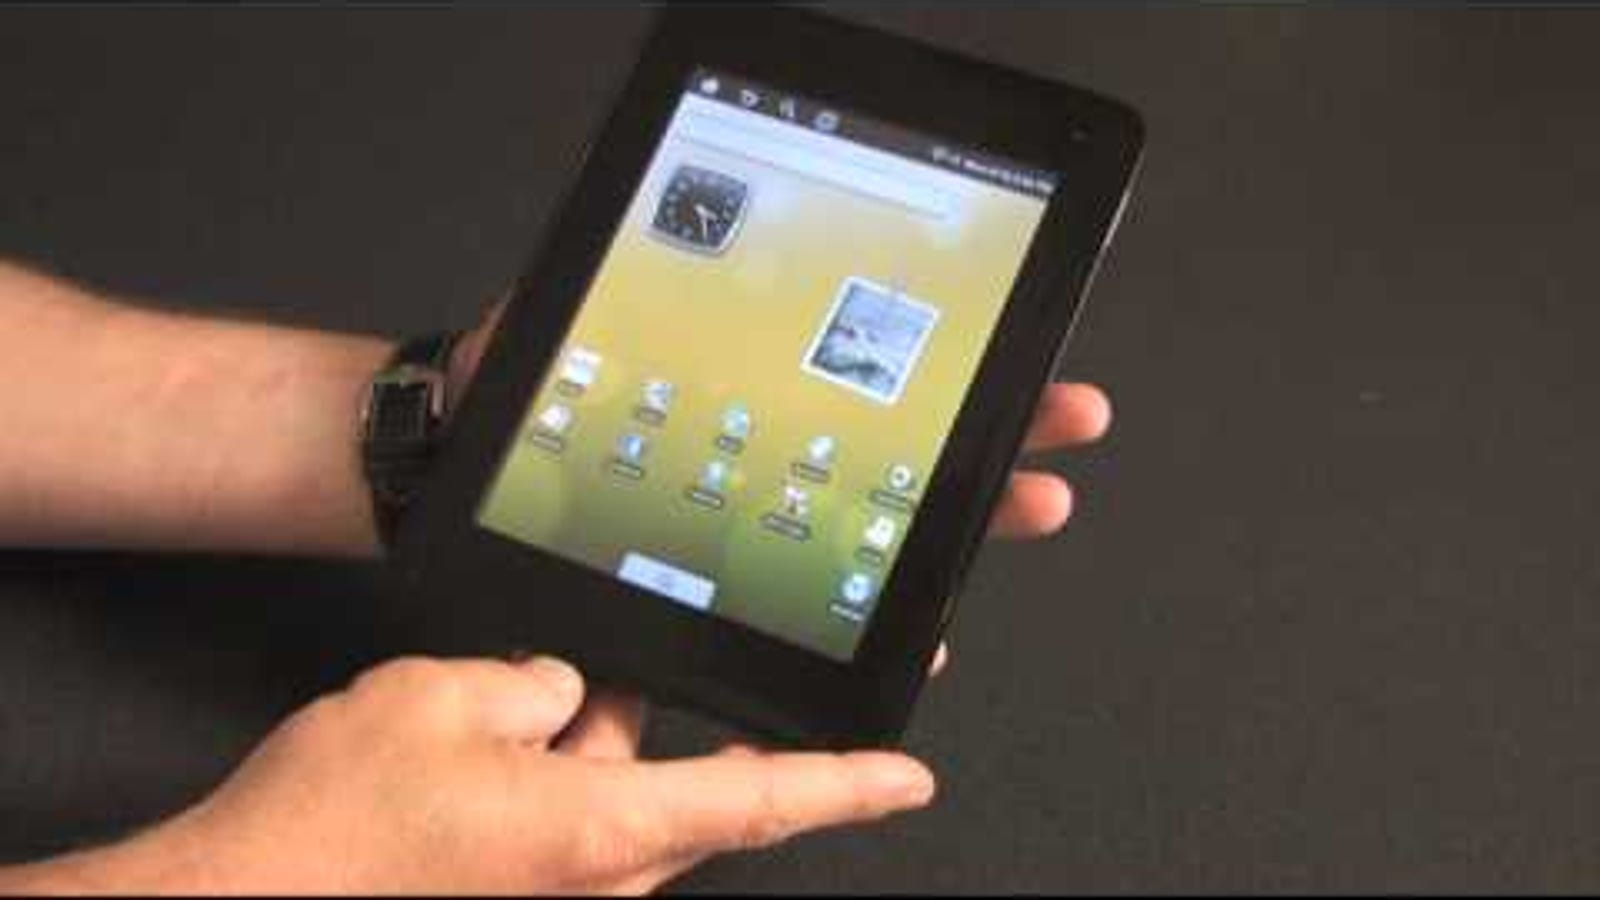 Admirable Tour The Cruz Reader A 200 Android Tablet Download Free Architecture Designs Xaembritishbridgeorg